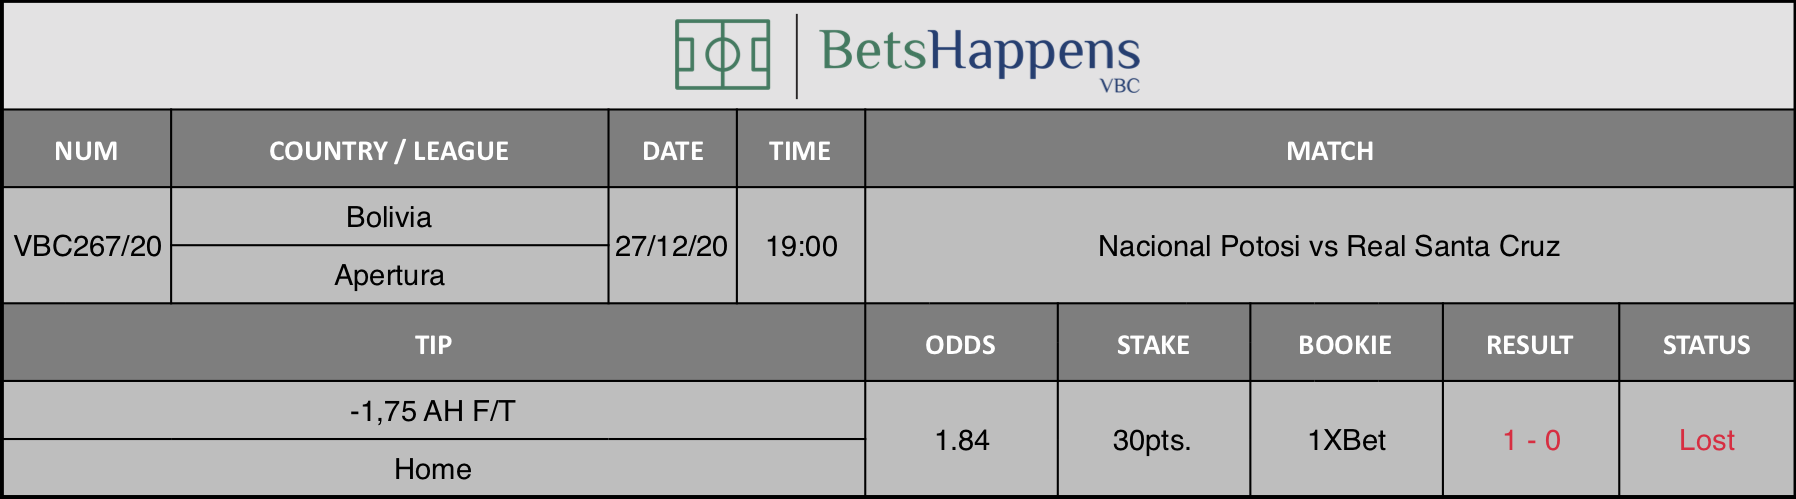 Results of our tip for the Nacional Potosi vs Real Santa Cruz match where -1,75 AH F/T Home is recommended.